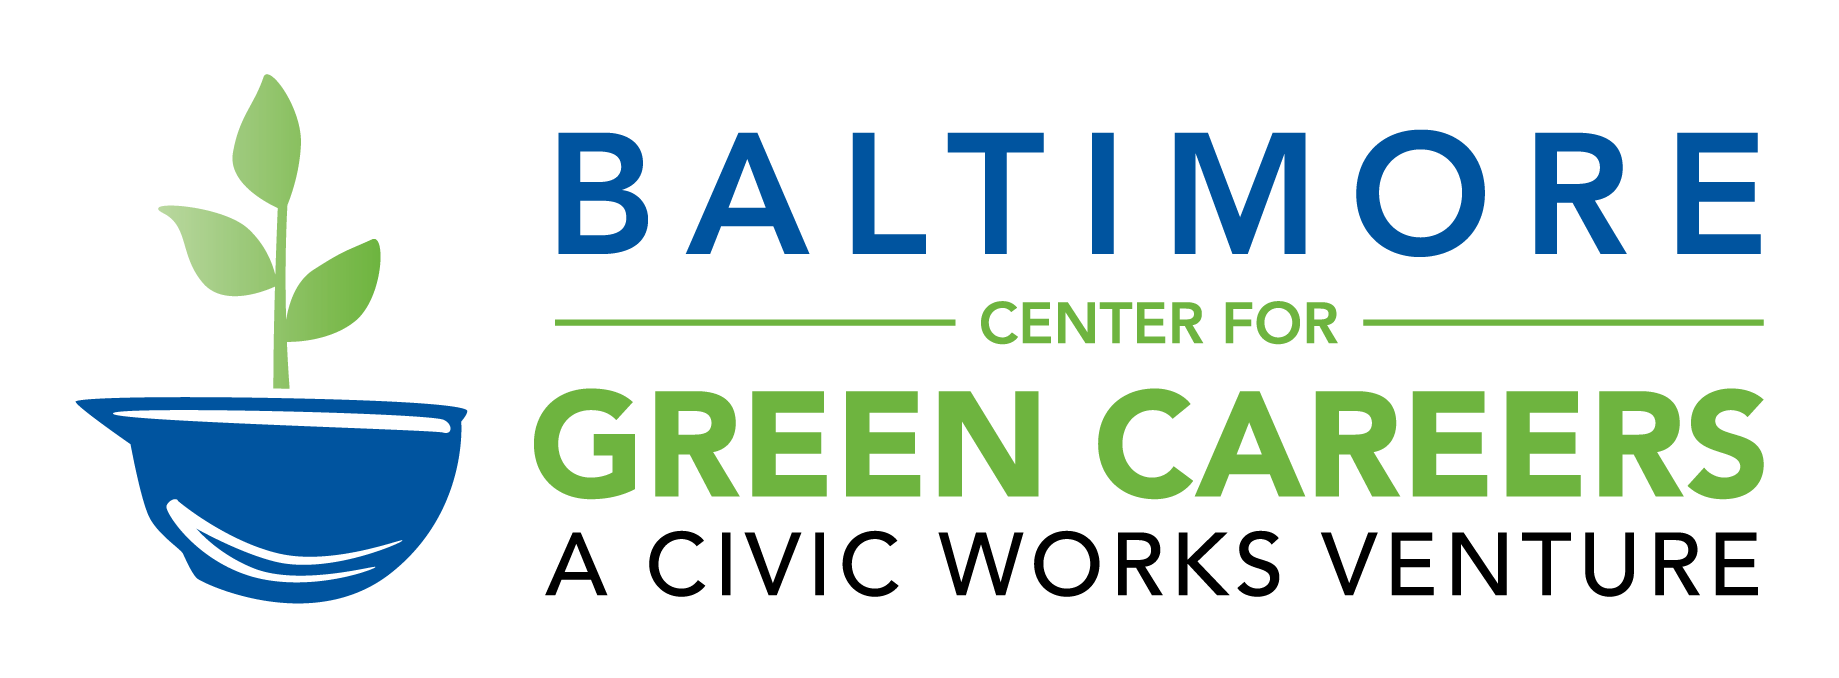 Baltimore Center for Green Careers: A Civic Works Venture Logo